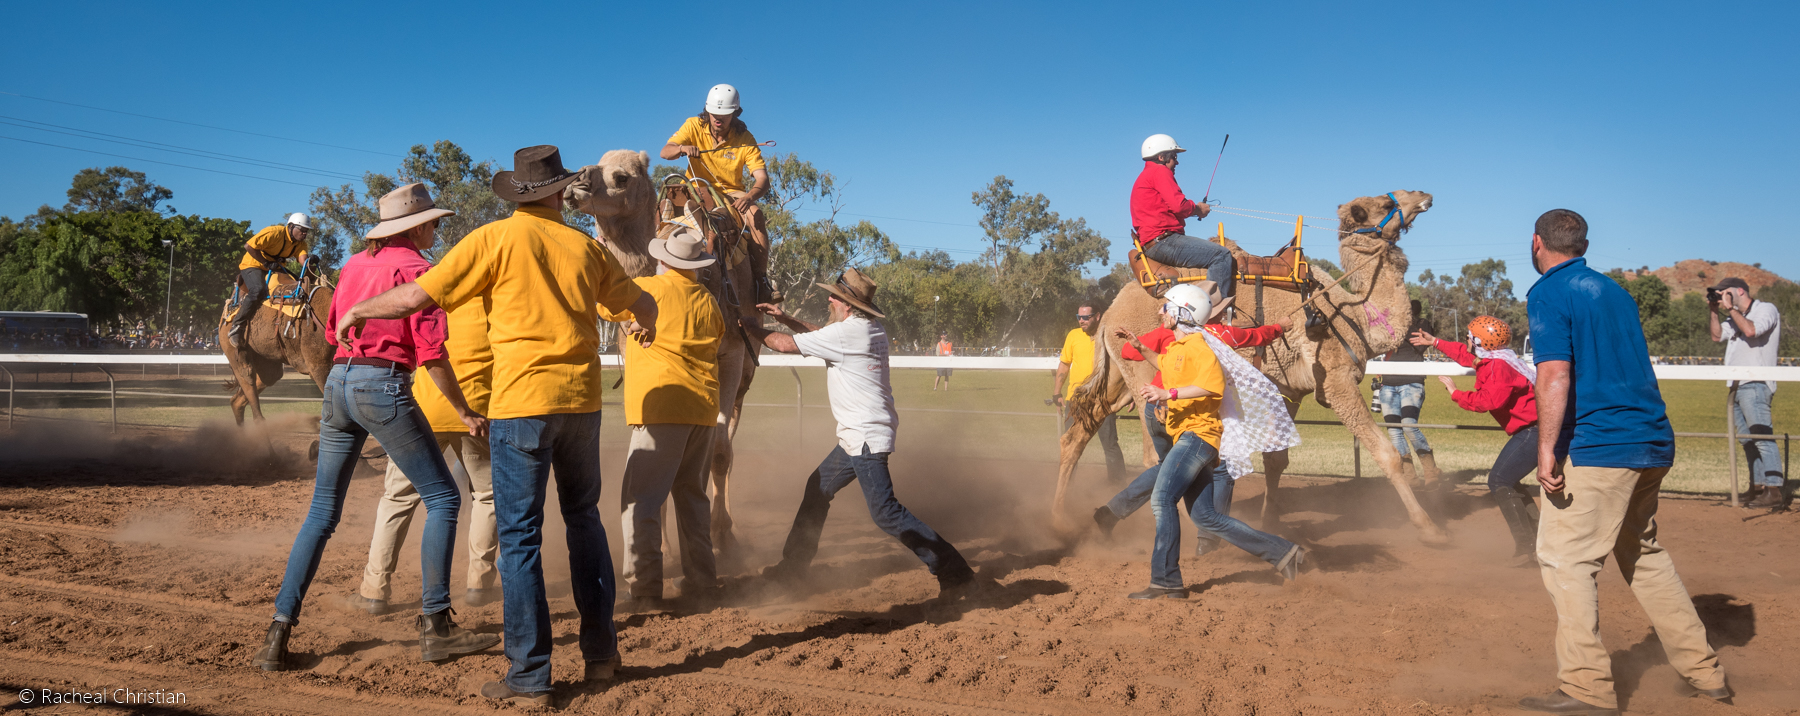 Alice Springs Camel Cup - Photography by Racheal Christian rachealchristainphotography.com